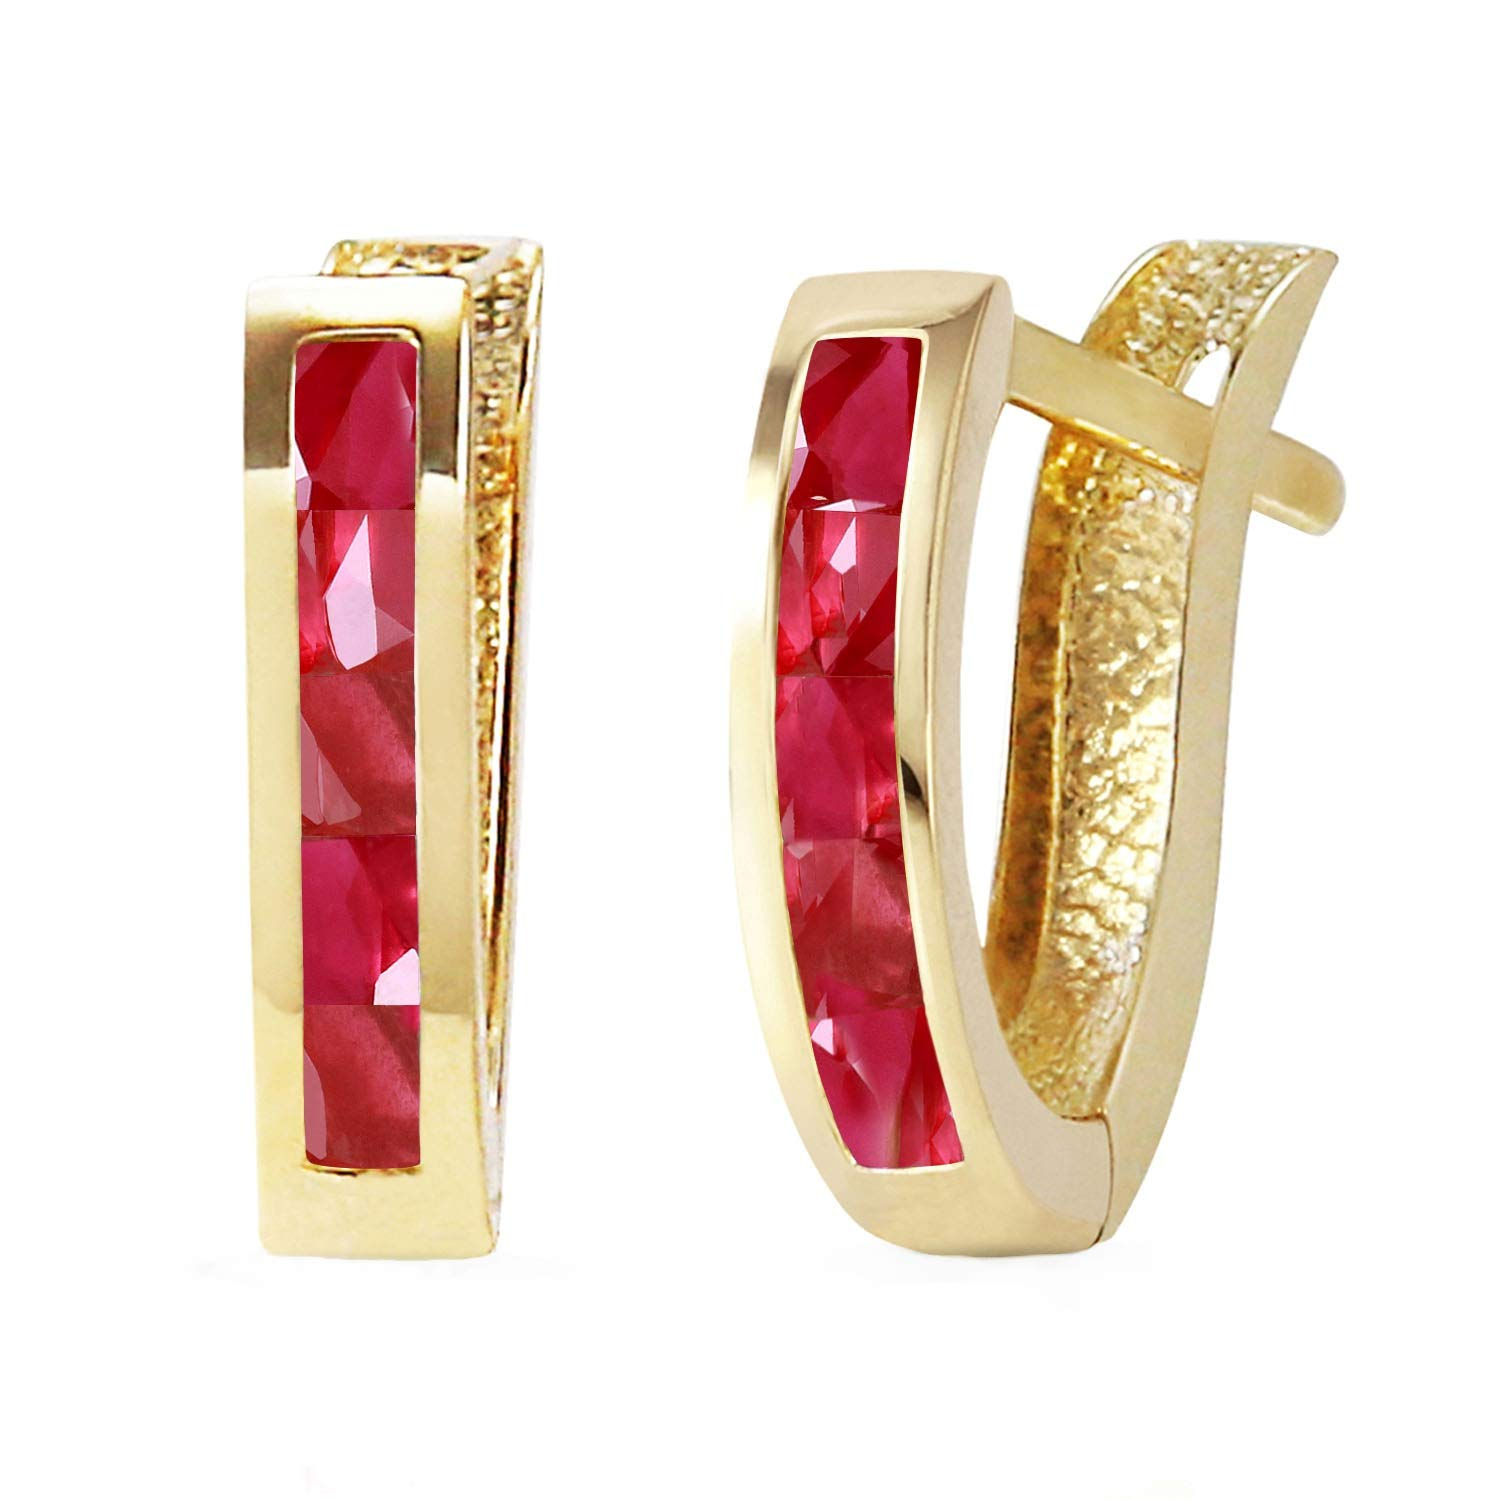 Galaxy Gold 14K Solid Yellow Gold Oval Huggie Earrings with Natural 1.3 Carat Ruby